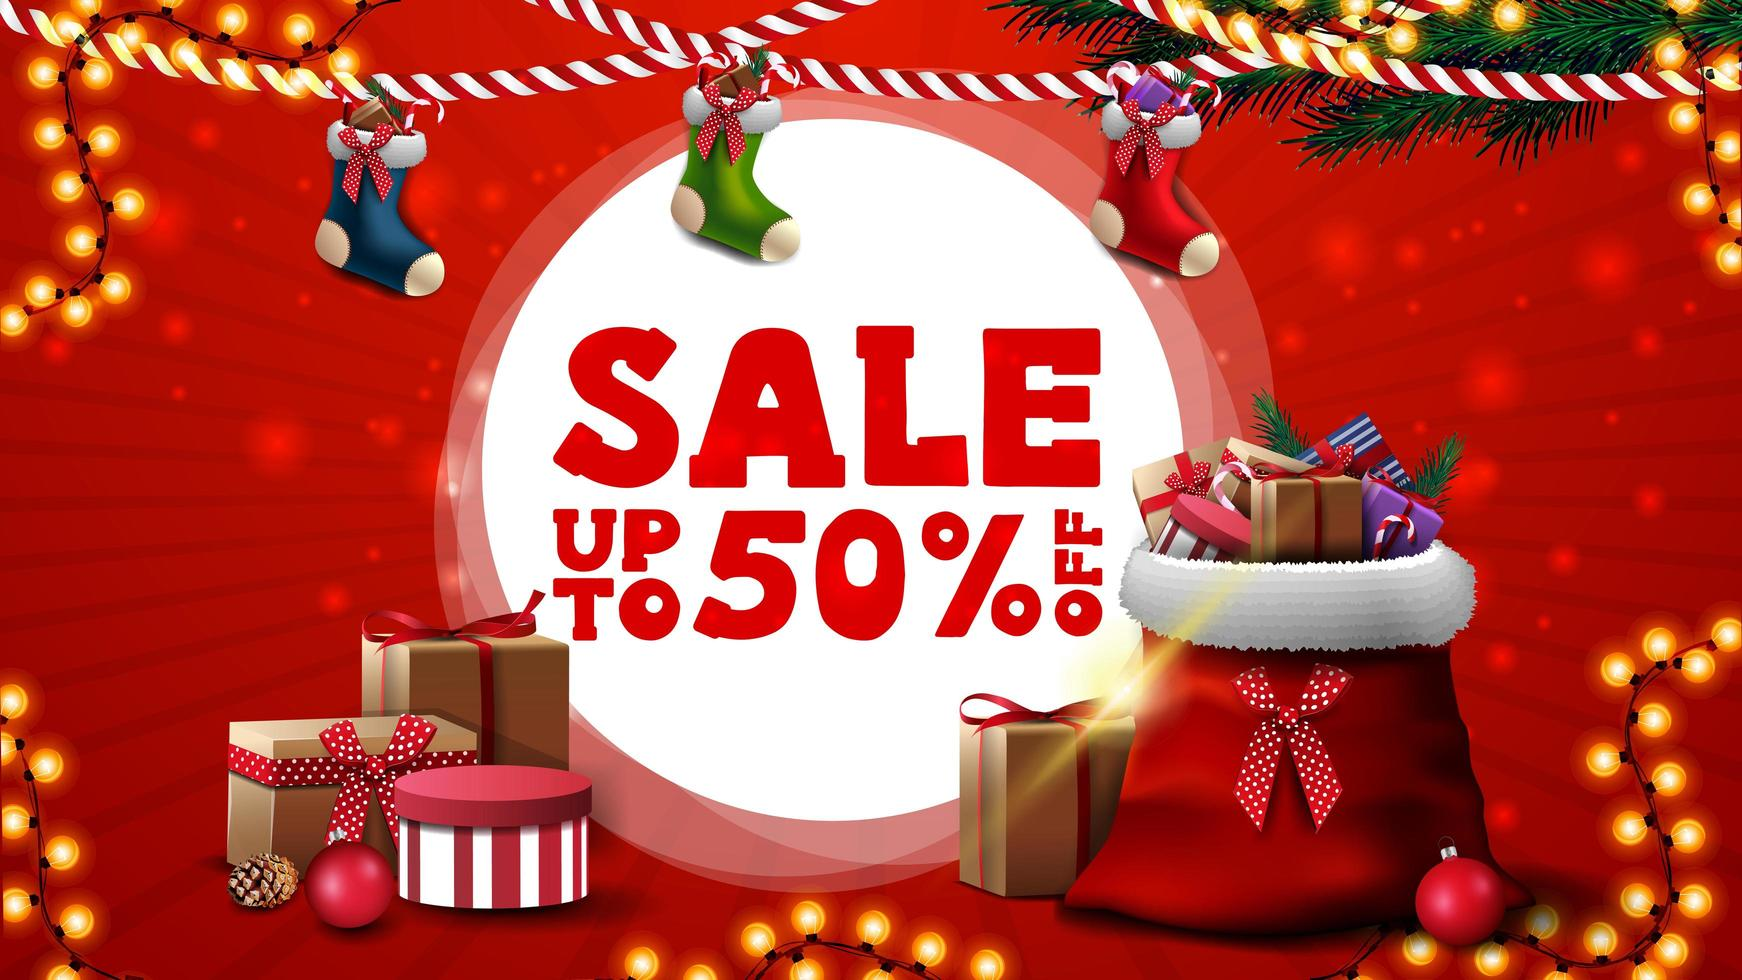 Christmas sale, up to 50 off, red discount banner for website with Christmas stockings and Santa Claus bag with presents vector